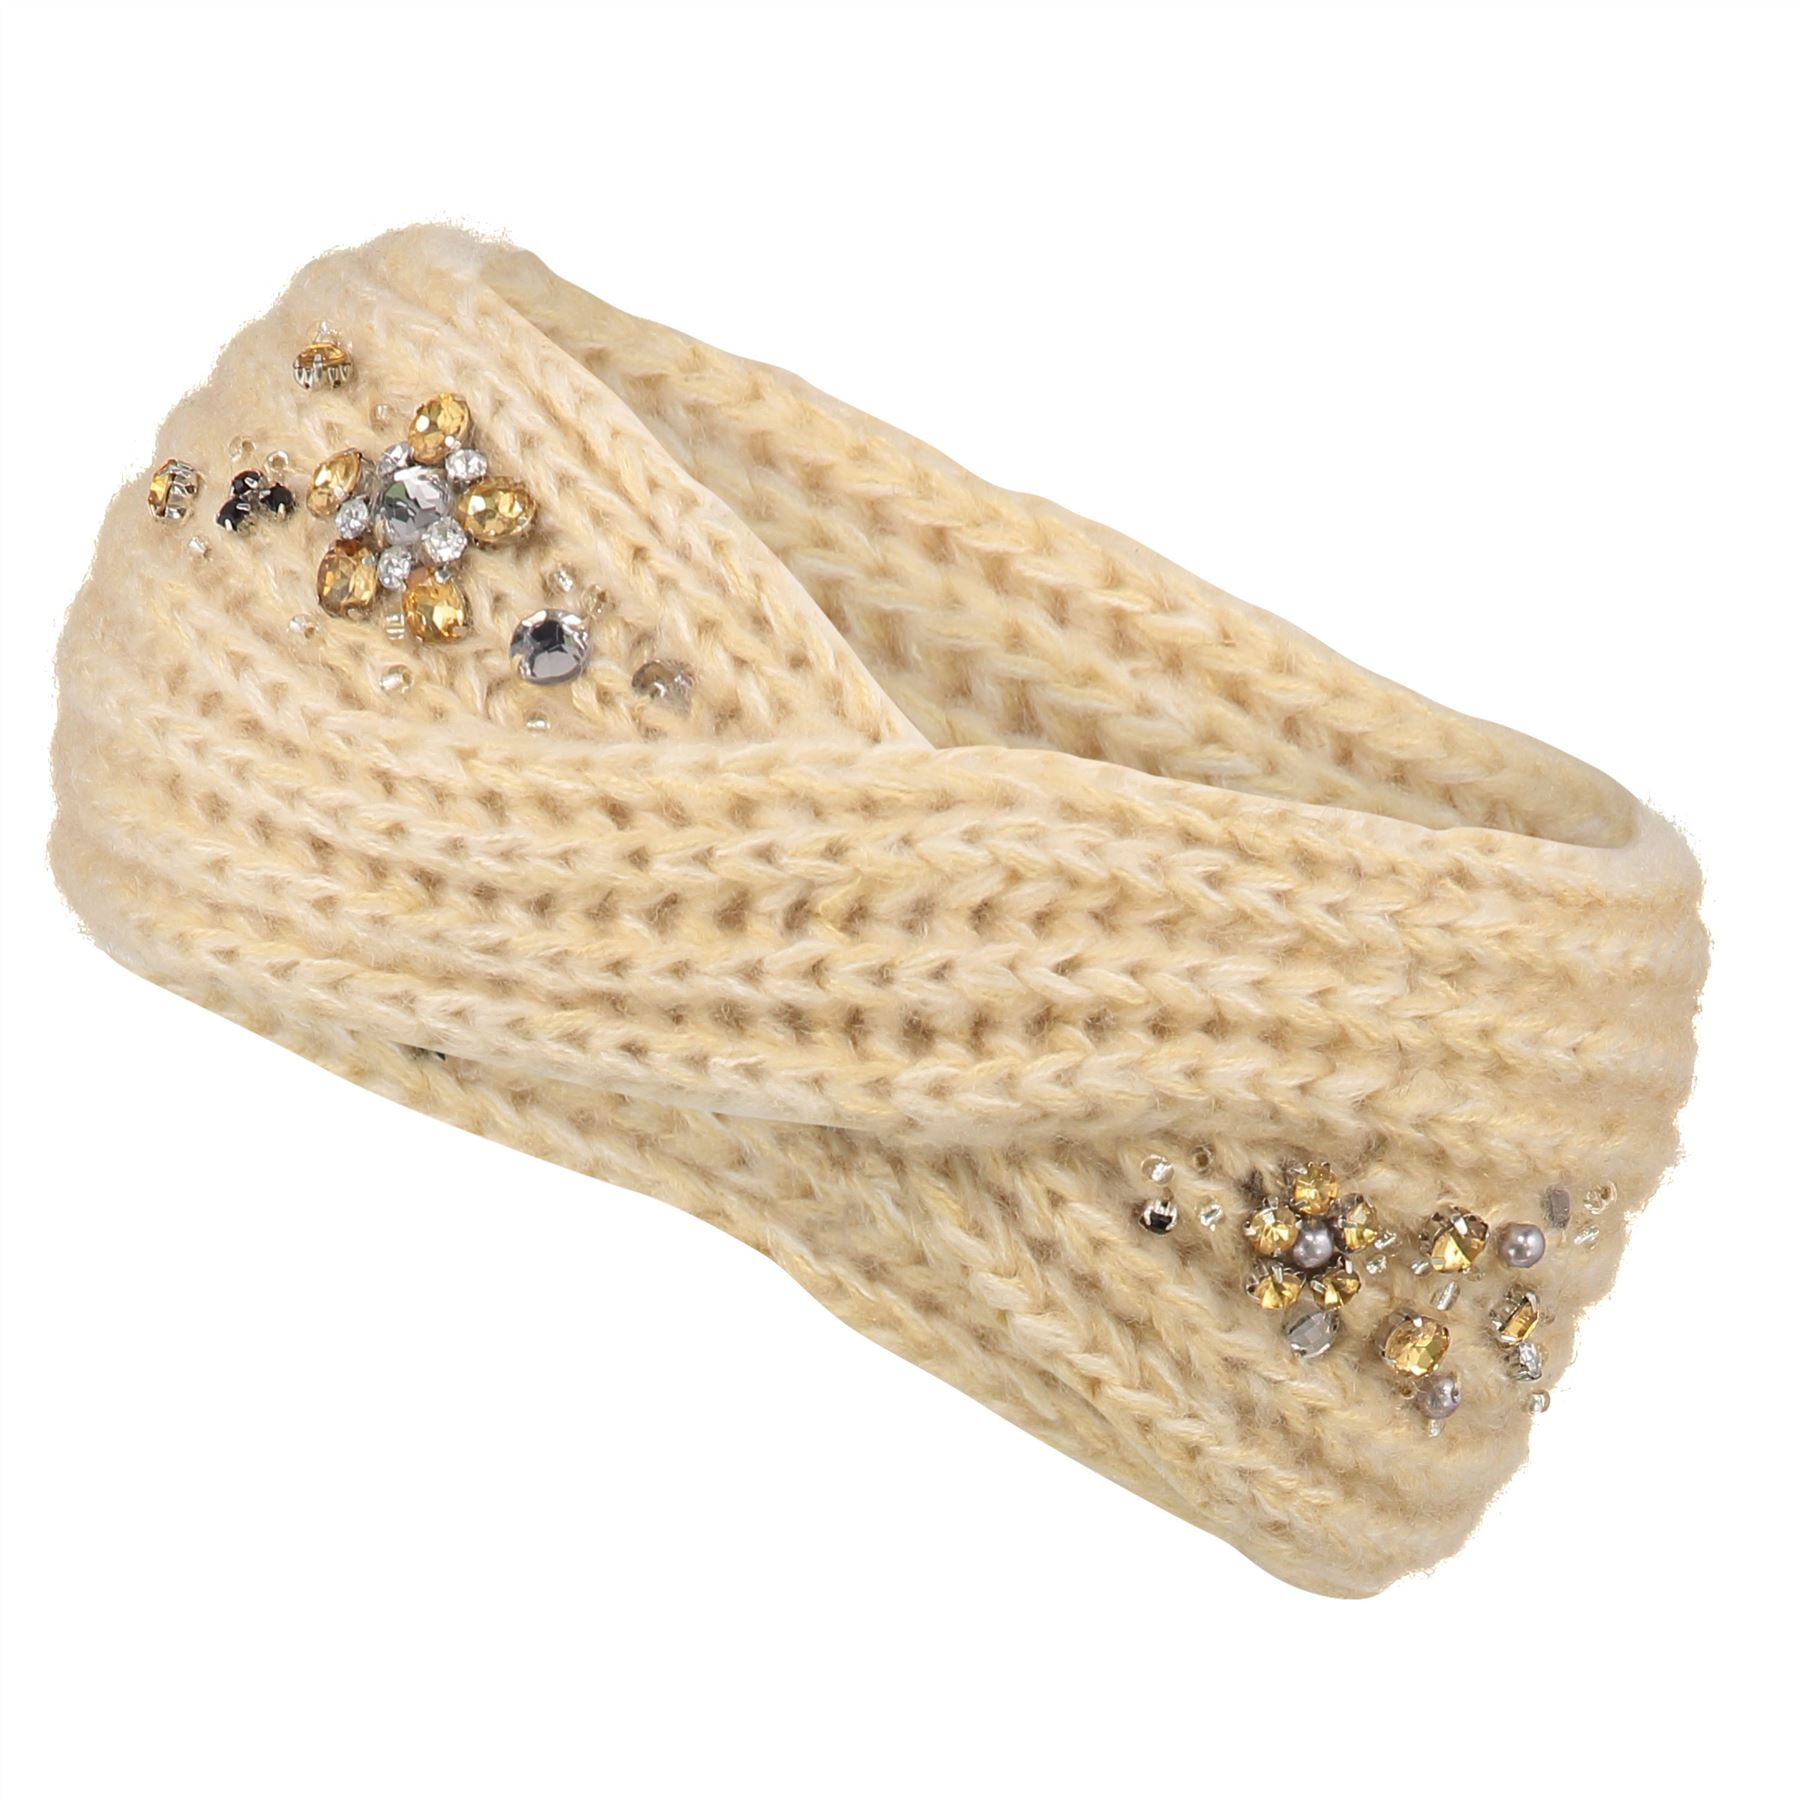 Image of Embellished Twist Knit Headband - Cream - One Size